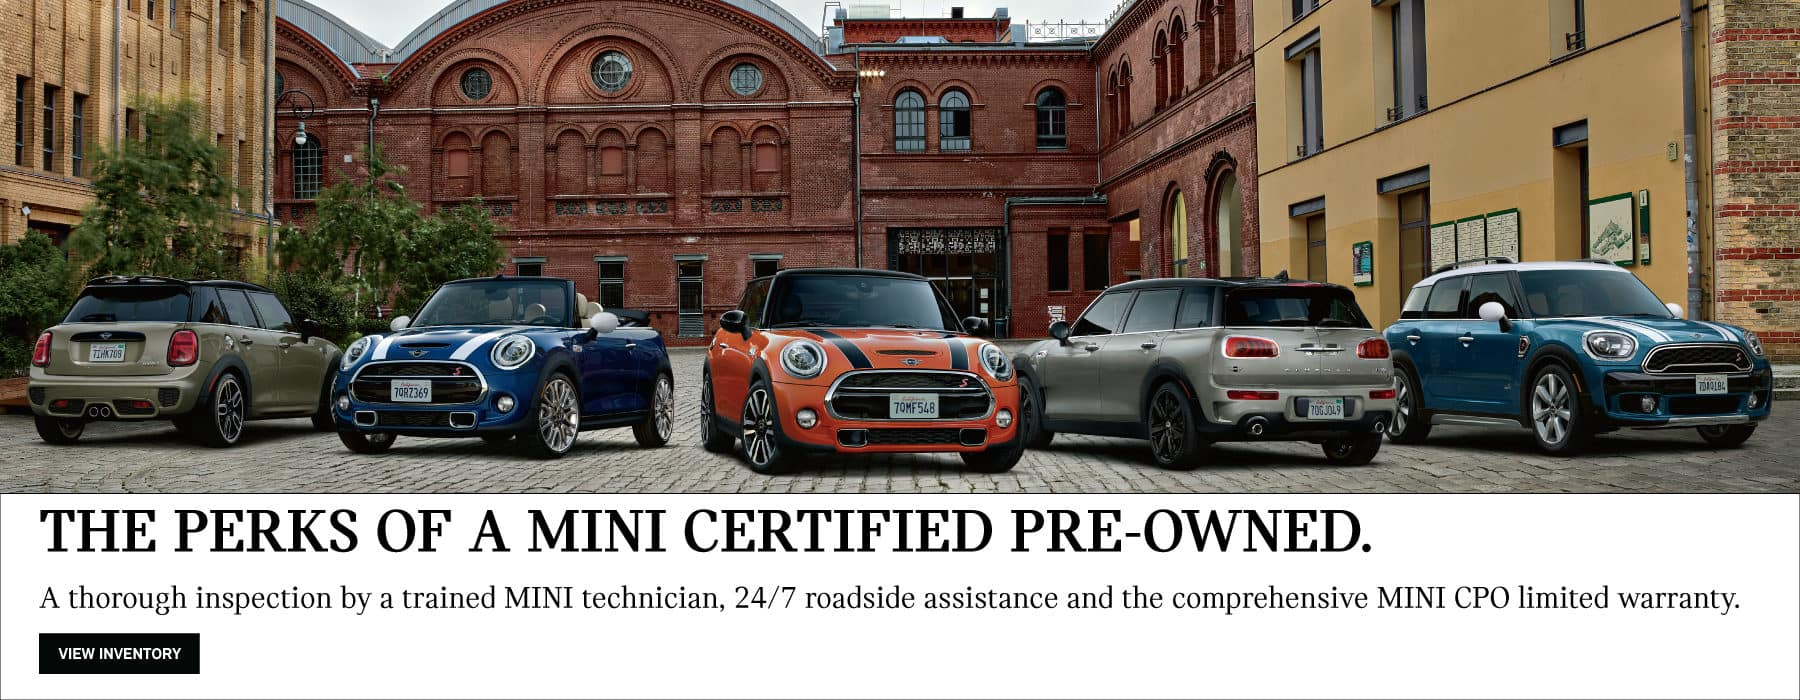 The perks of a mini certified pre-owned. A thorough inspection by a trained MINI technician, 24/7 roadside assistance and the comprehensive MINI CPO limited warranty. Click to view inventory.